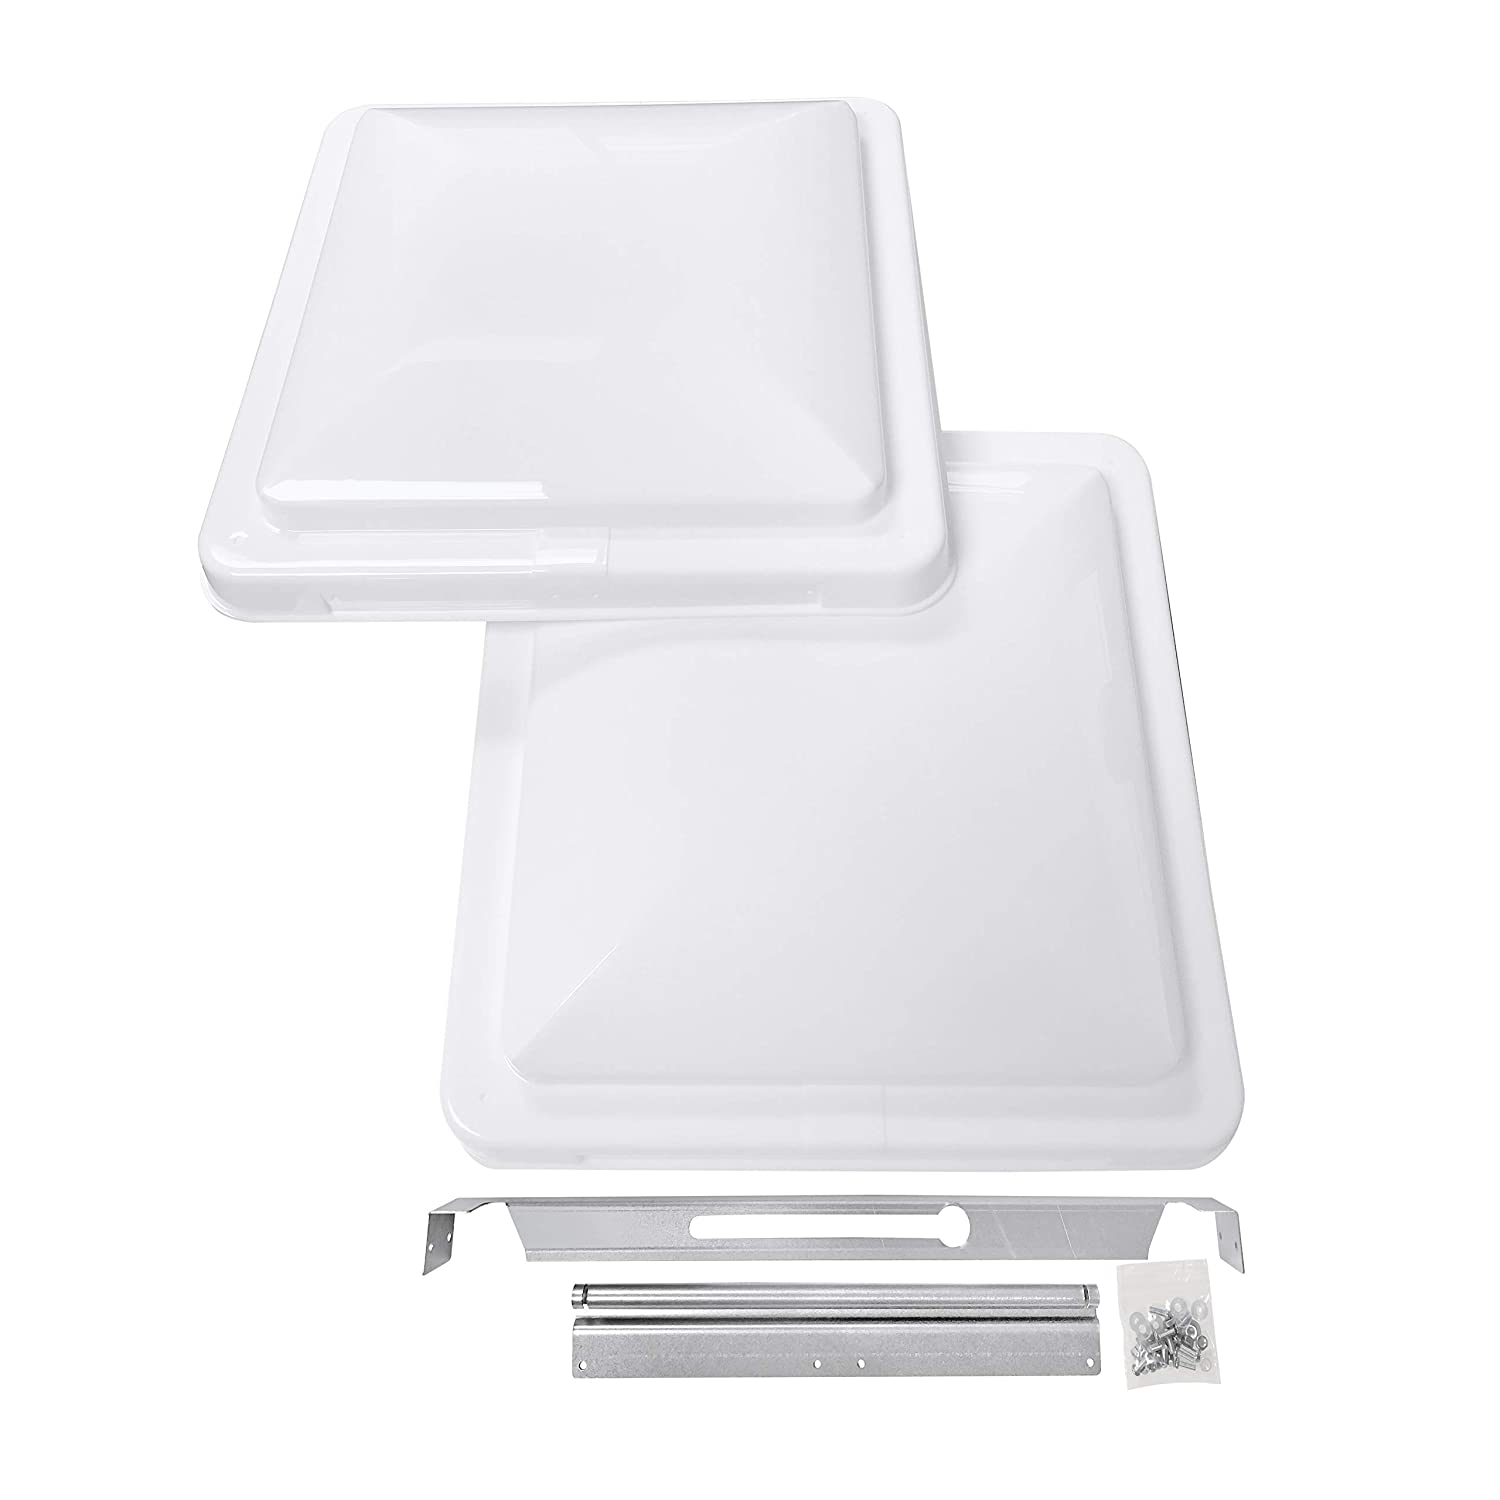 "Camp'N 14"" Universal RV, Trailer, Camper, Motorhome Roof Vent Cover - Vent Lid Replacement (White 2 Pack)"